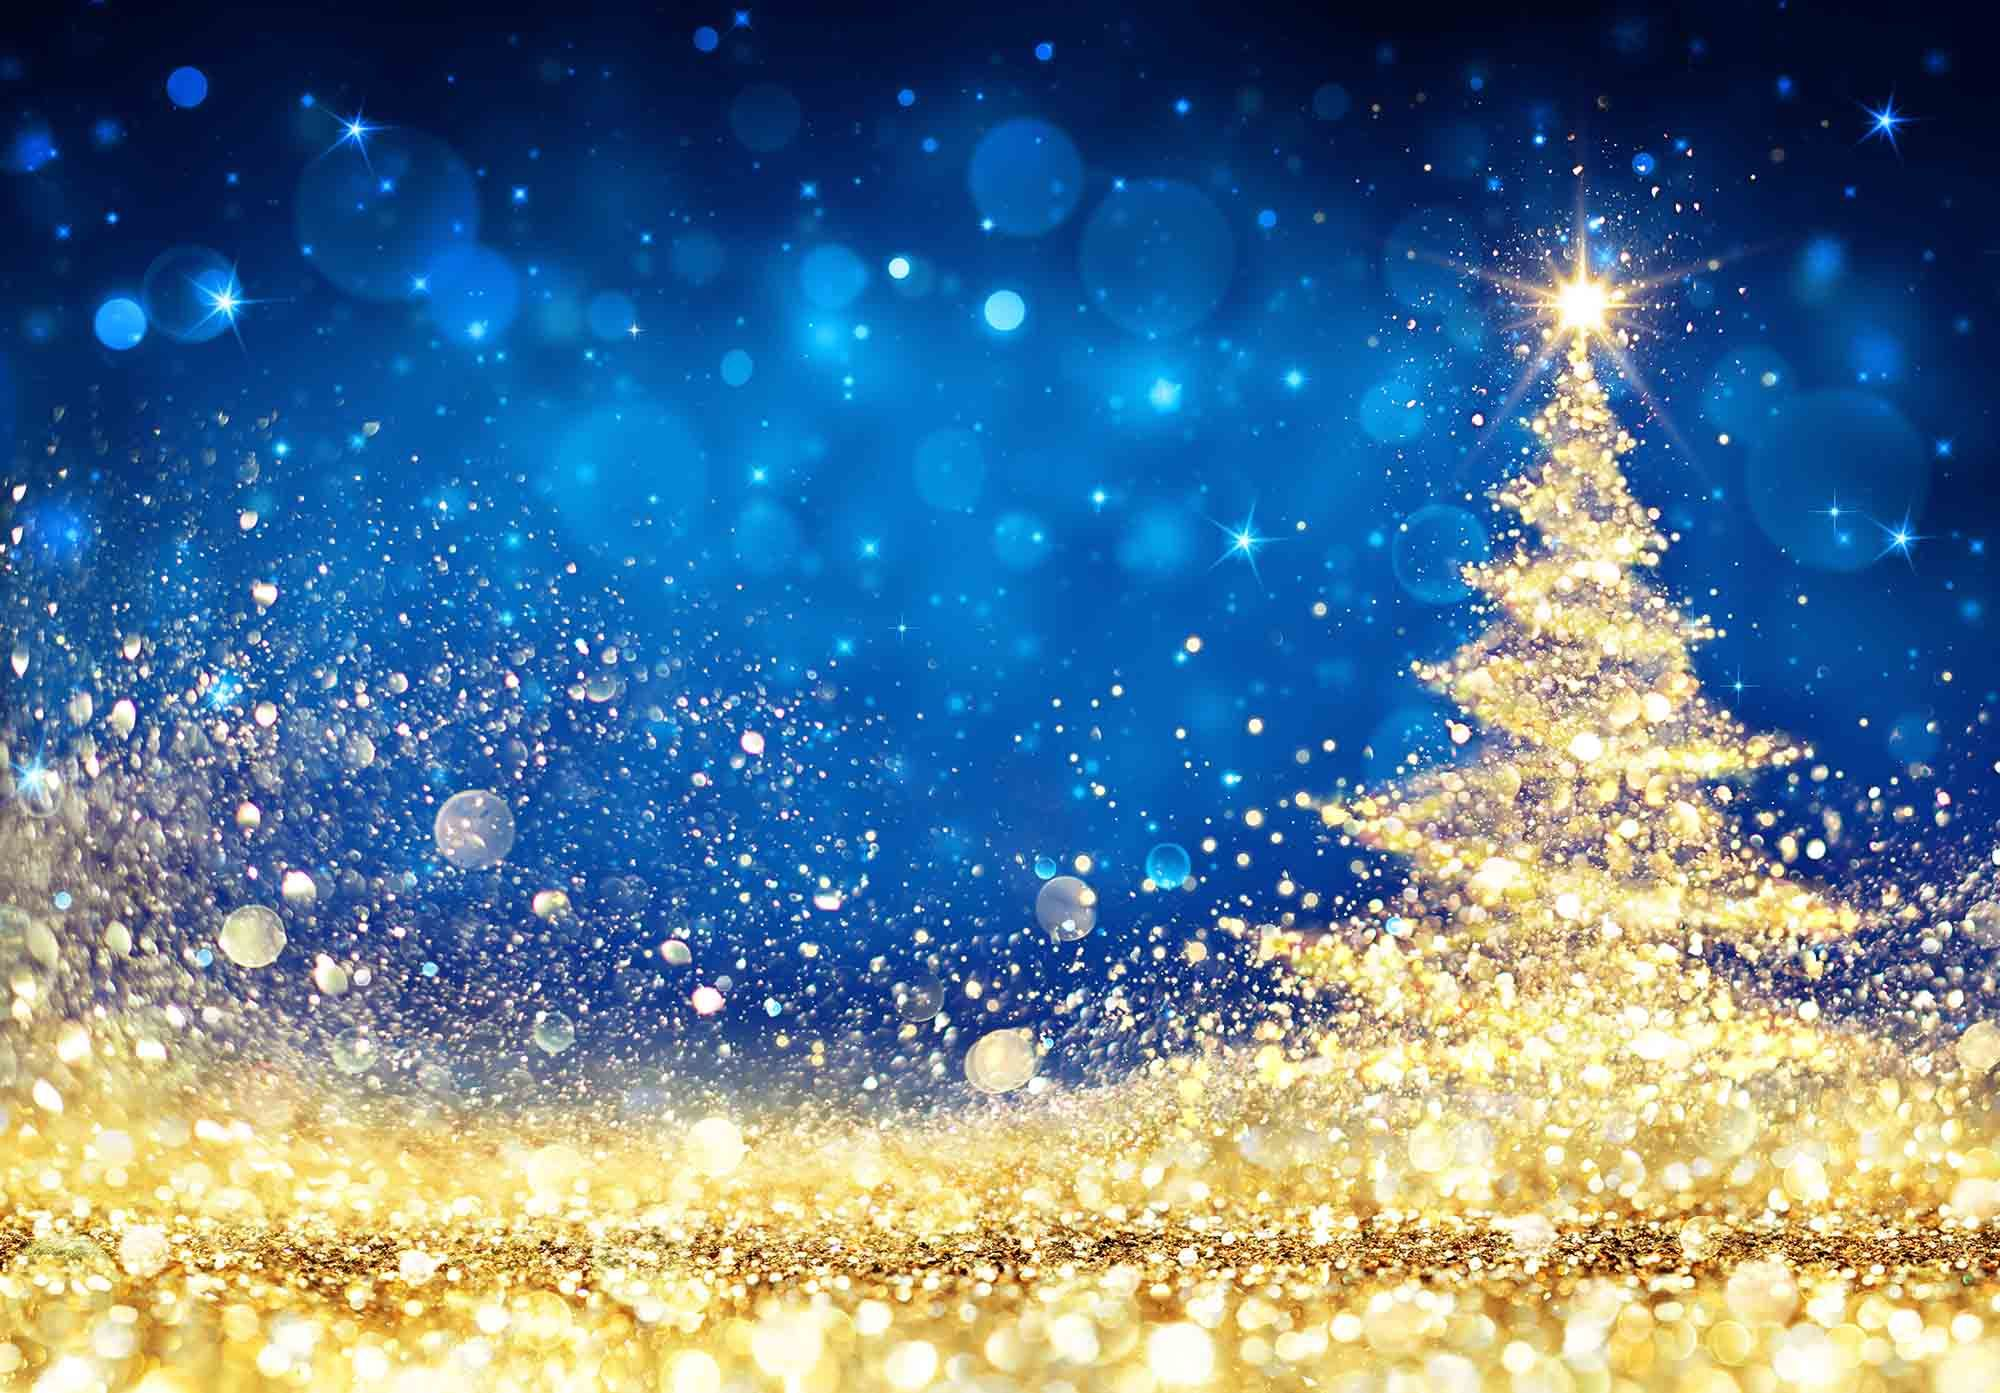 2000x1393 - Christmas Trees Backgrounds 2